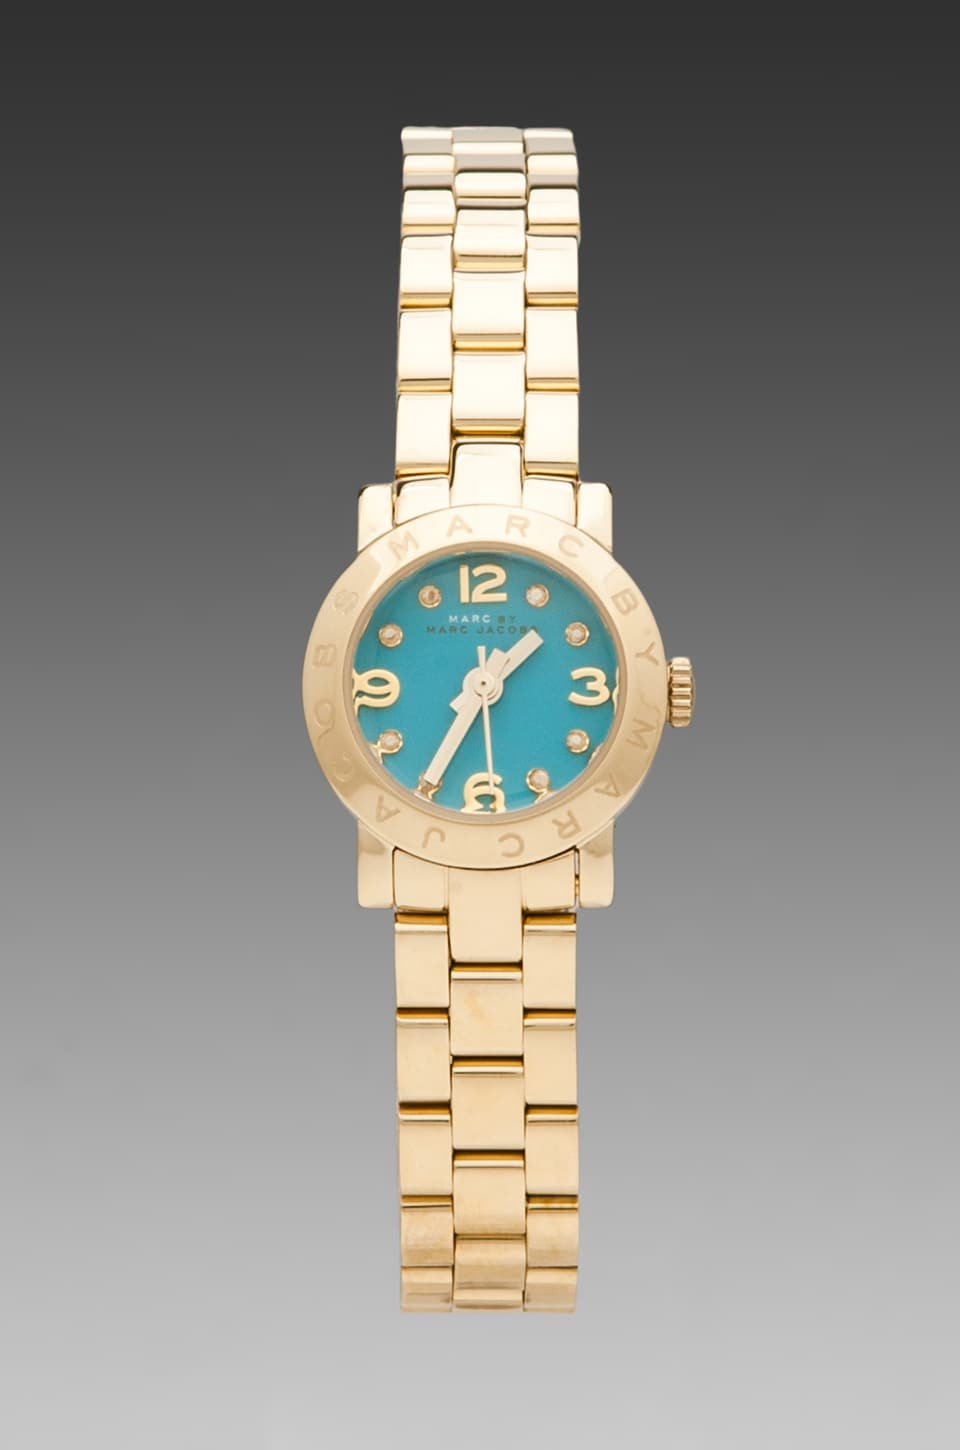 Marc by Marc Jacobs Amy Dinky Watch in Aqua/Gold